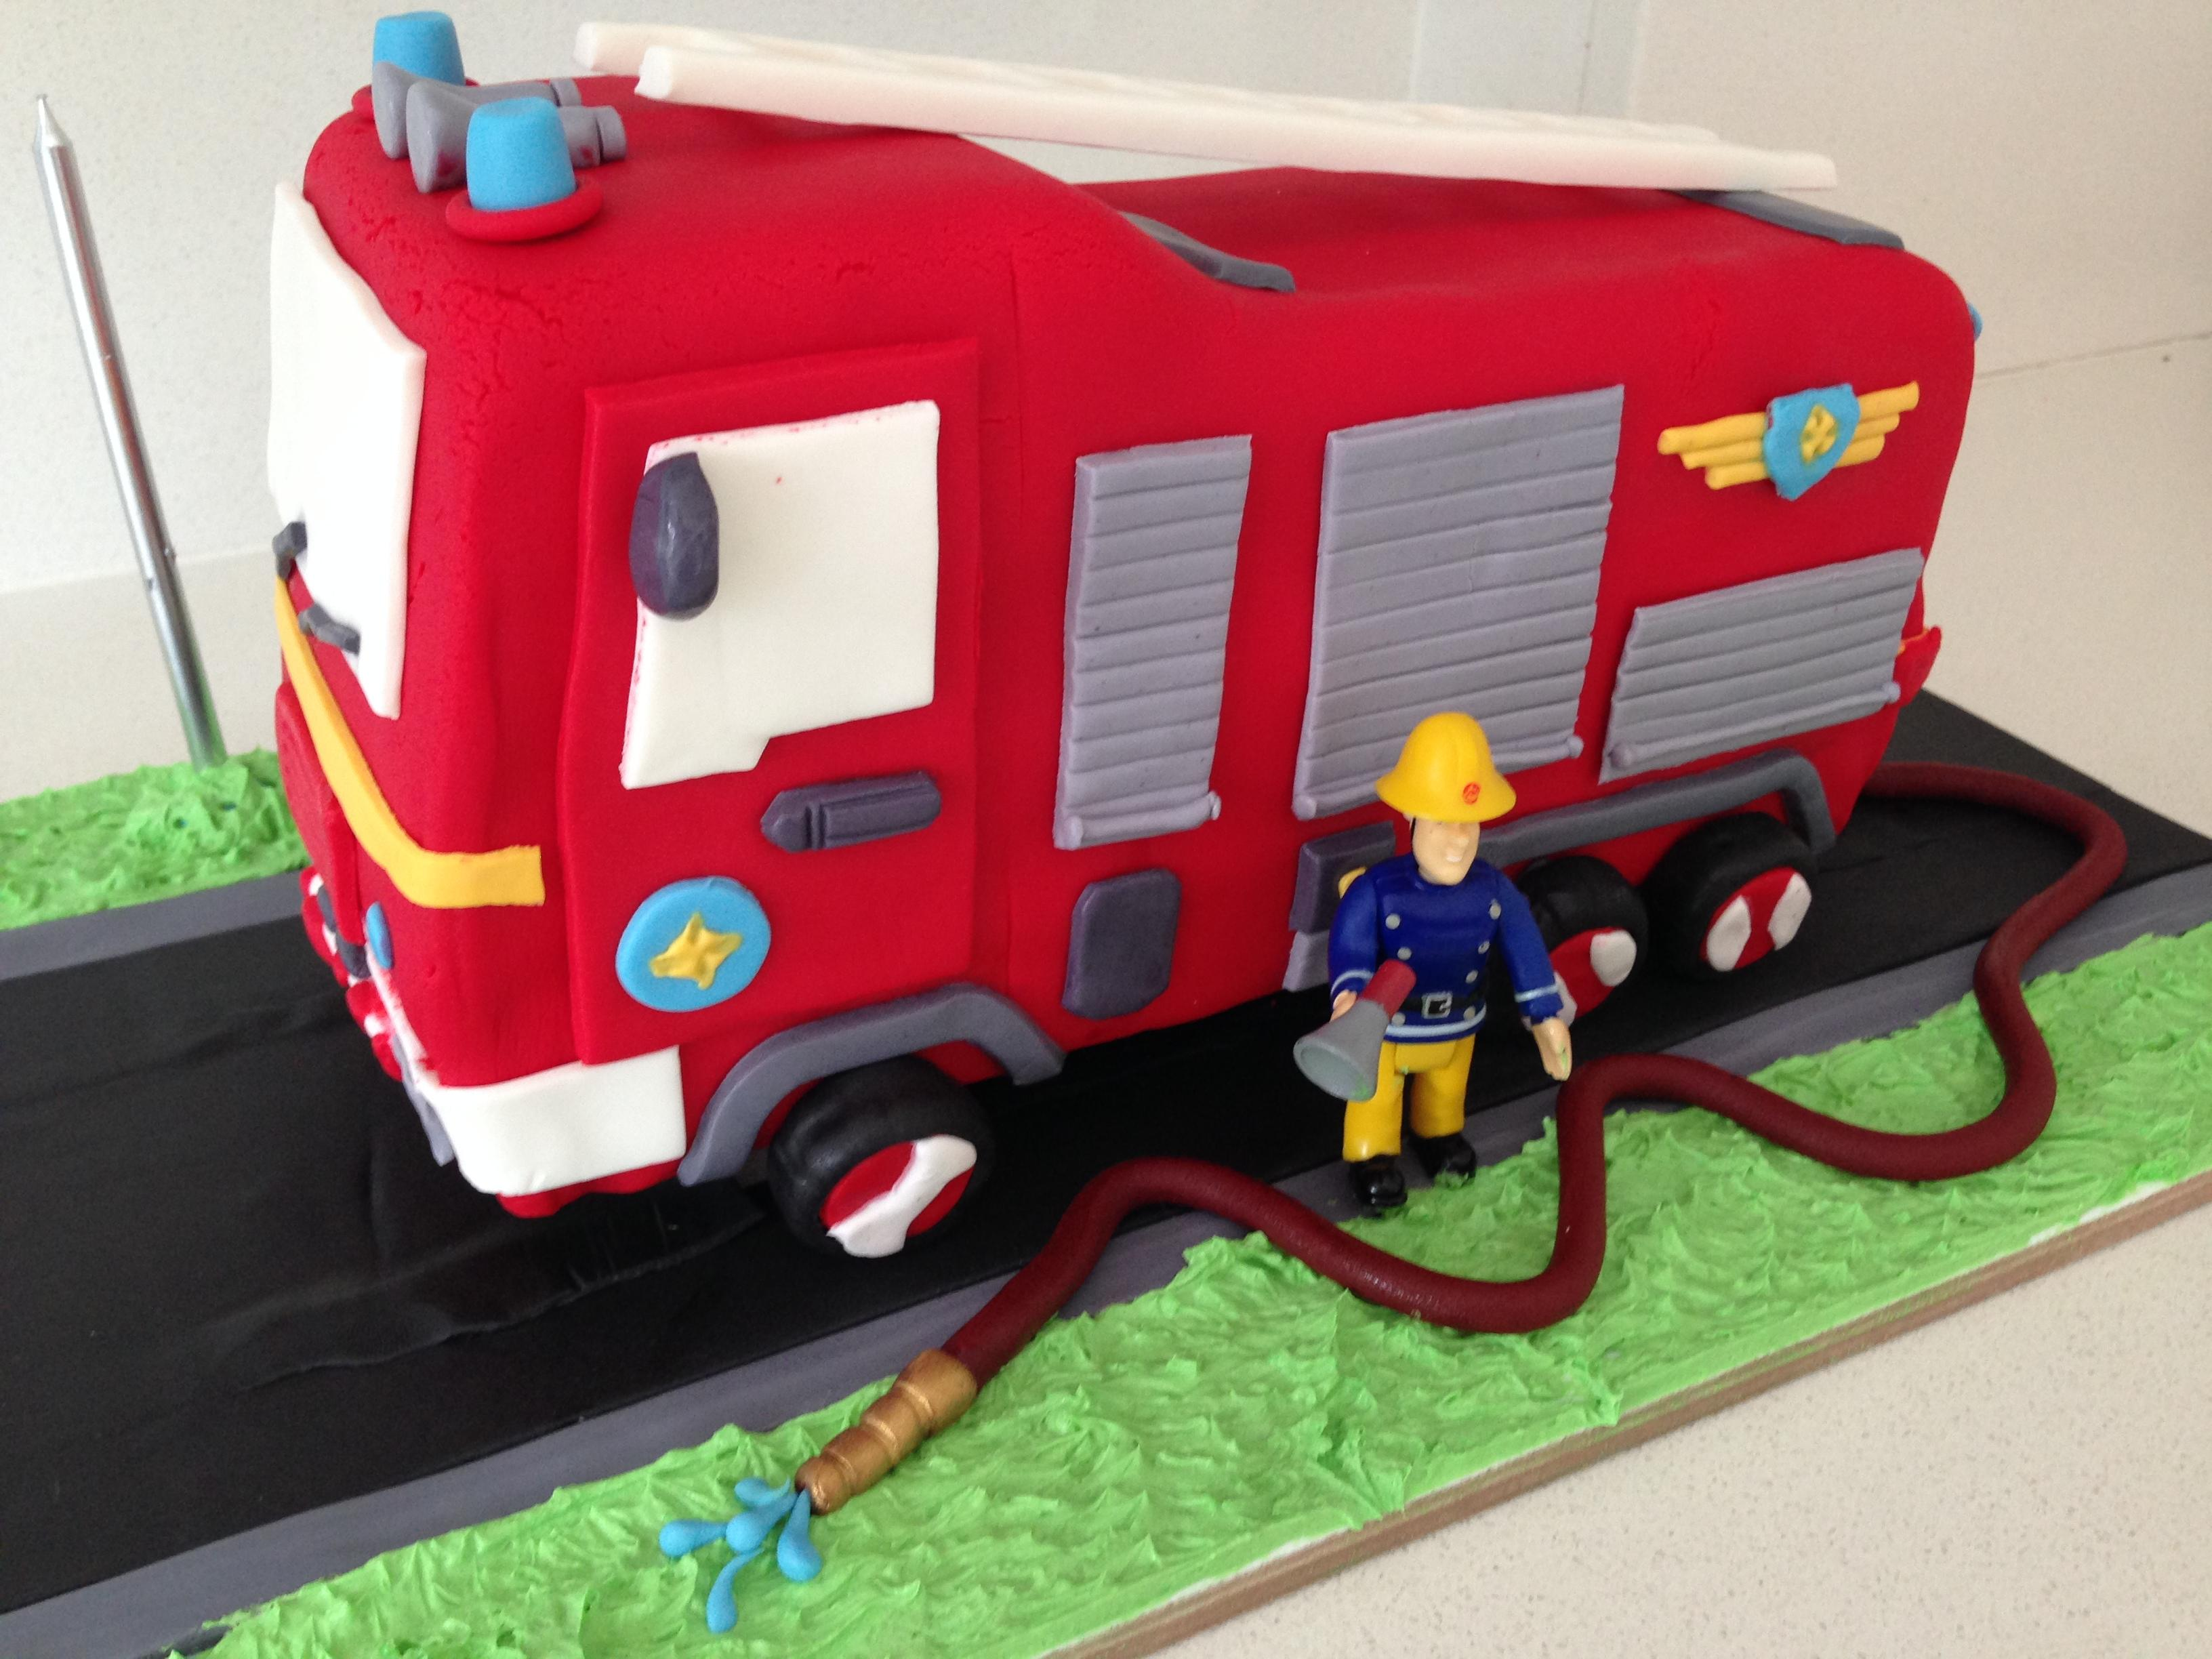 Howtocookthat Cakes Dessert Amp Chocolate Firetruck